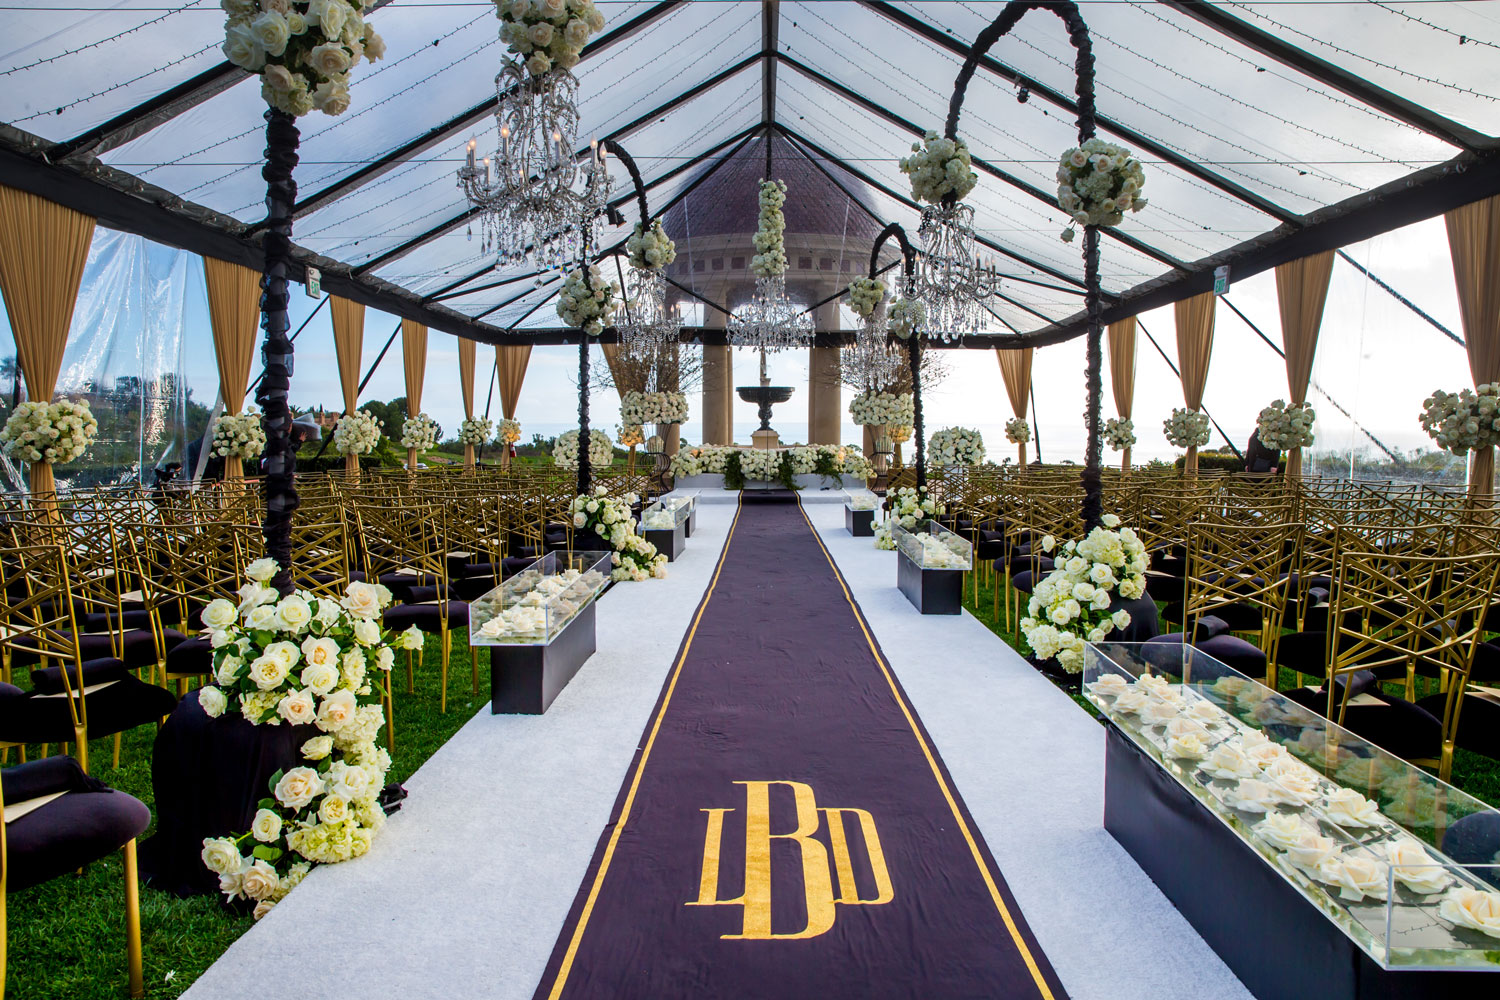 tent wedding ceremony art deco style black and gold color palette gatsby wedding ideas